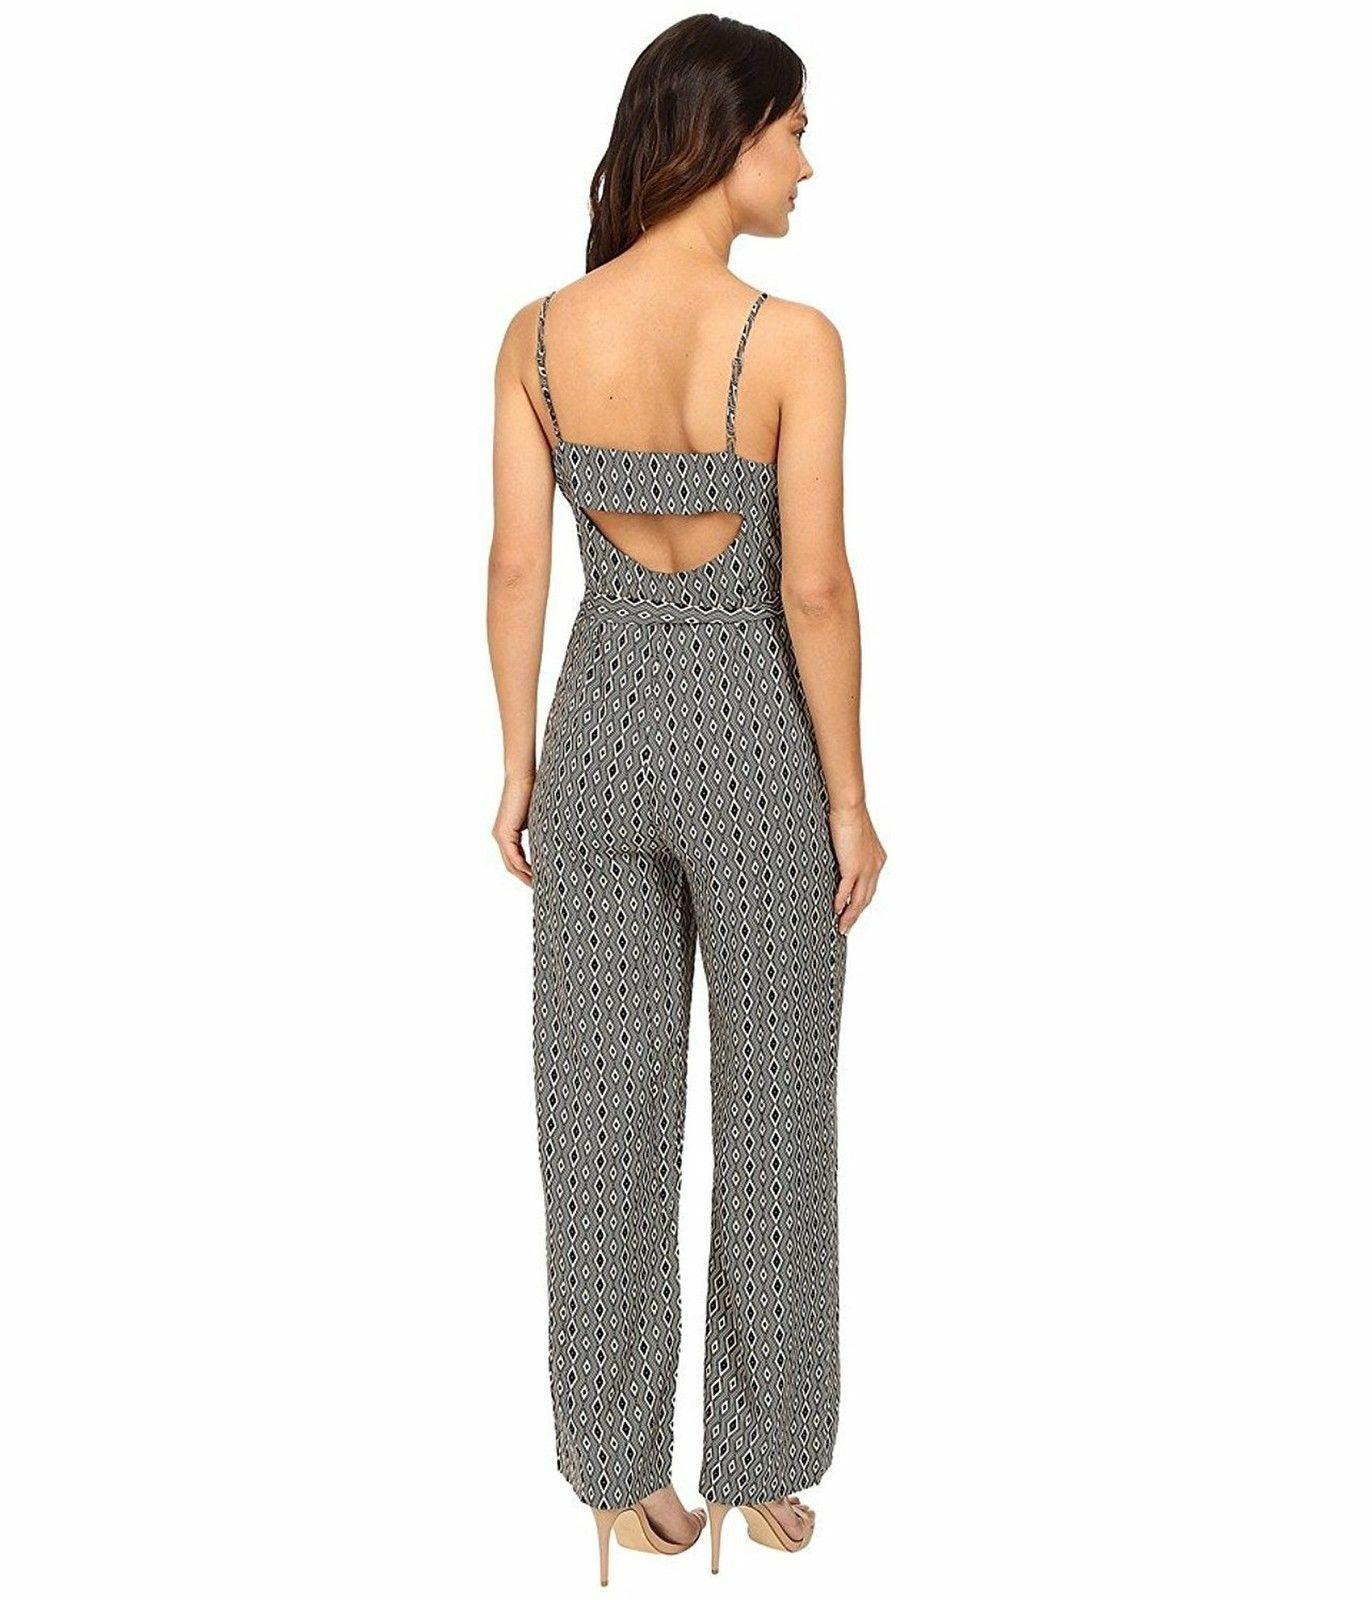 30e2aafb3e14 Sanctuary Women Harper Printed Belted Jumpsuit Black Diamond L for sale  online